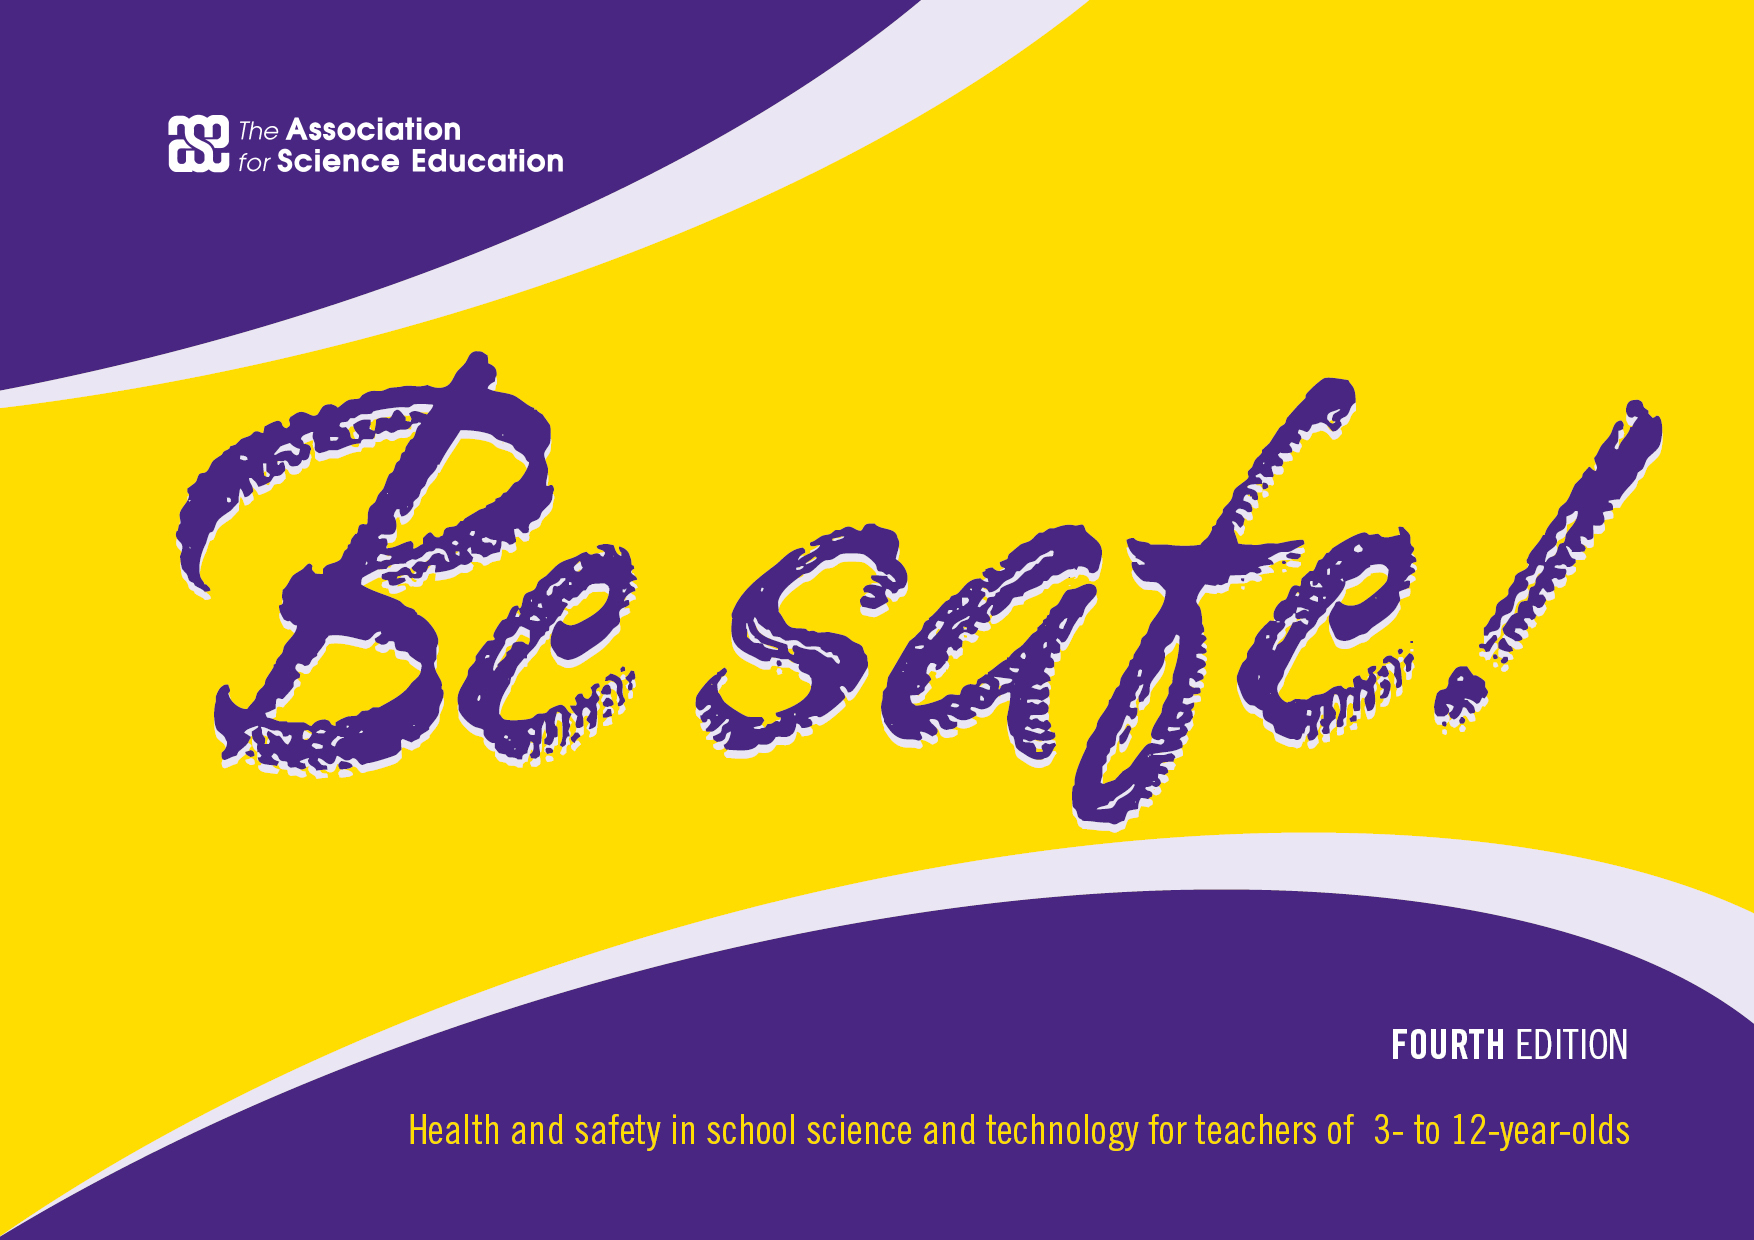 About the ILO Encyclopaedia of Occupational Health & Safety